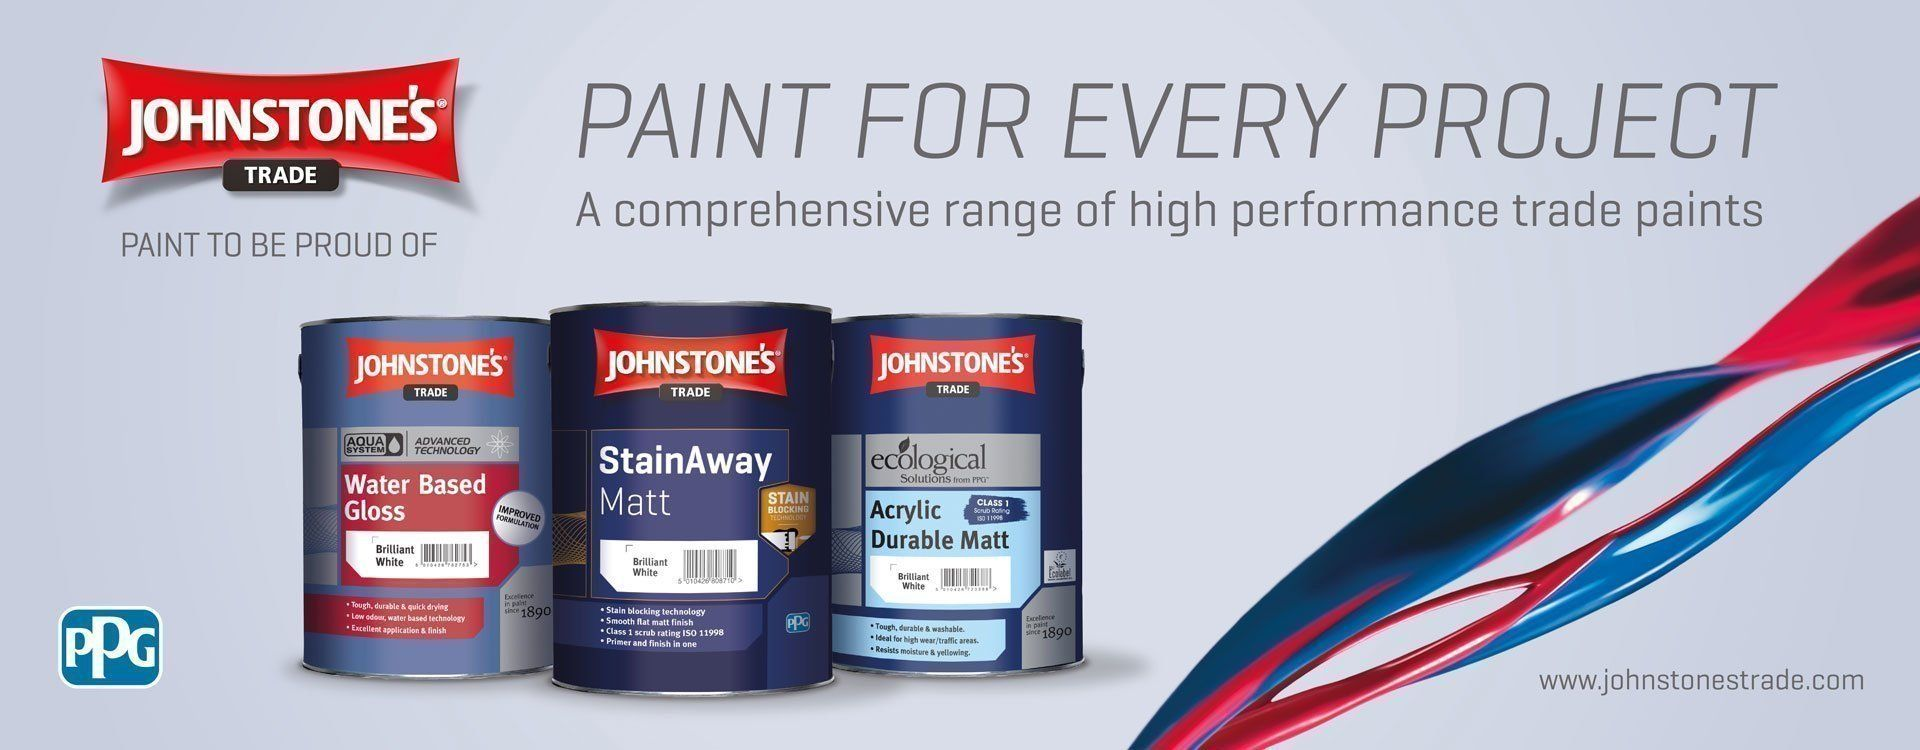 Johnstone's Trade Paint - Shop Online For Low Prices & Fast